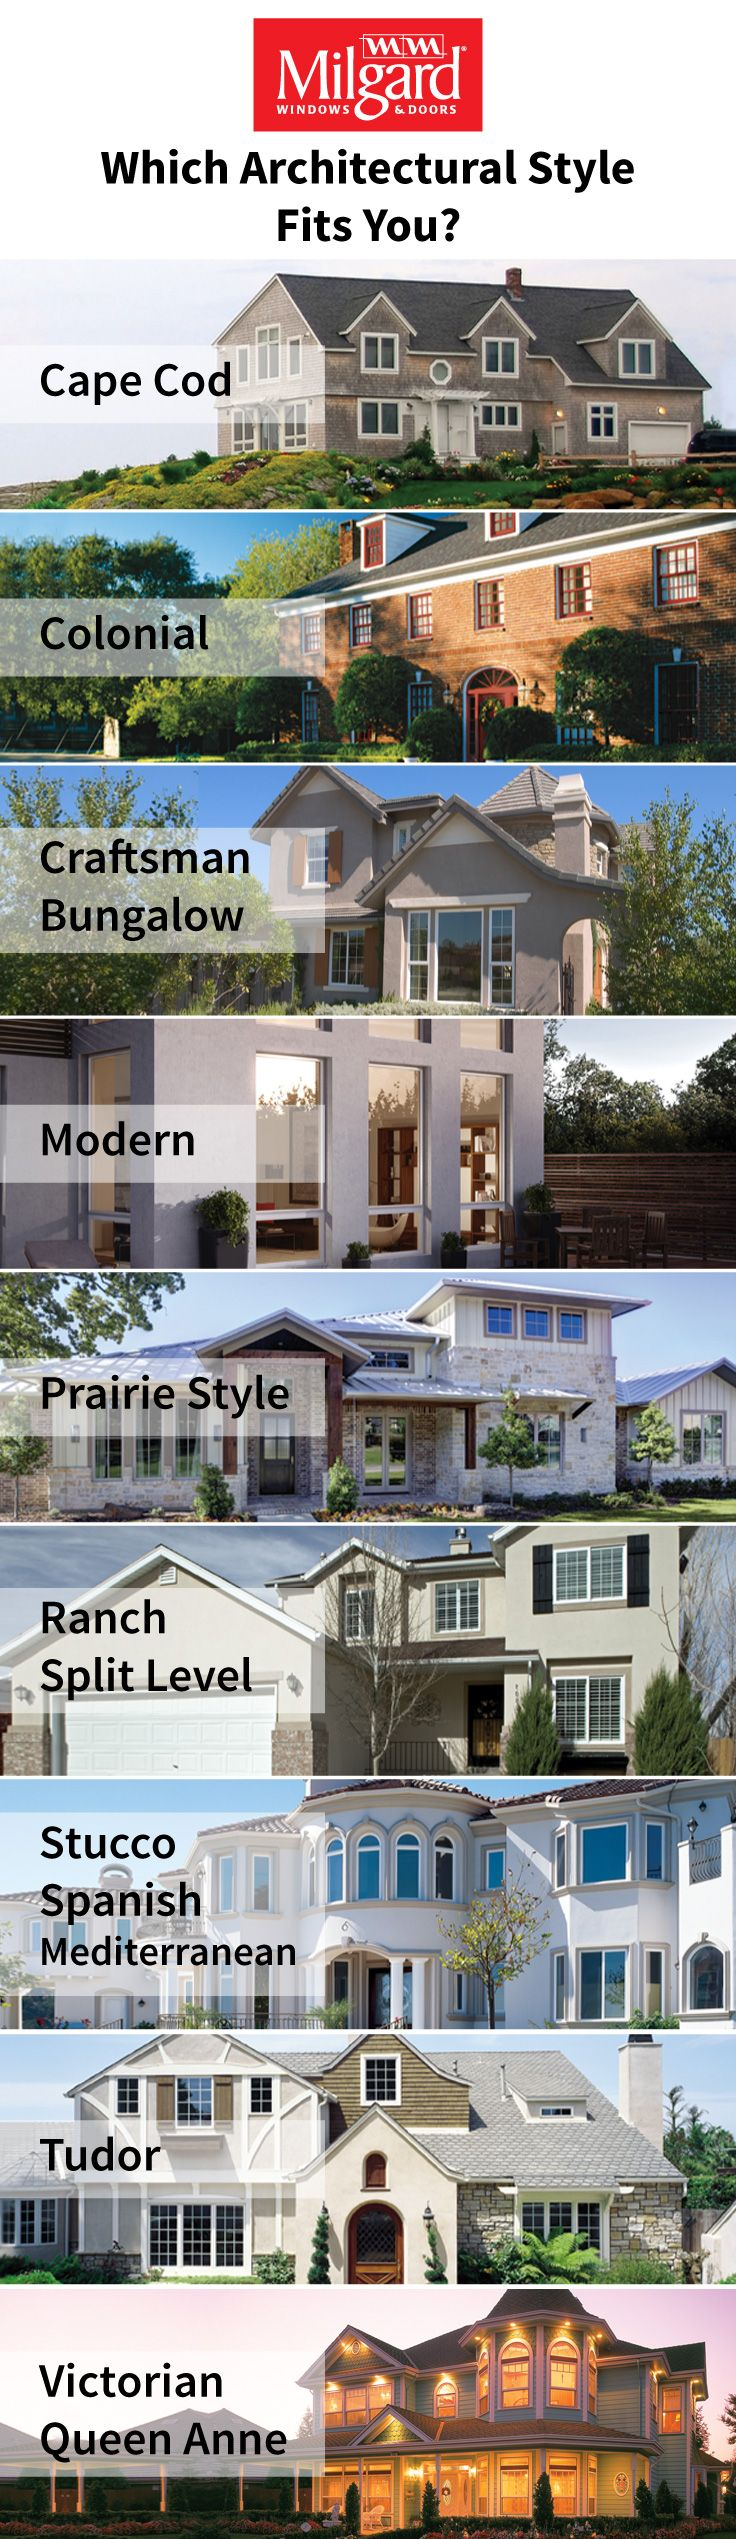 Which Architectural Style Fits You?  Every house has a unique style and even sometimes more than one, if you've made any renovations over the years. No matter what architectural style you started with, Milgard® windows and patio doors are custom made-to-order and designed to make a statement in any setting.   Need help deciding which windows fit your style? Visit our website, click the style and we'll give you some recommendations to help you get inspired.